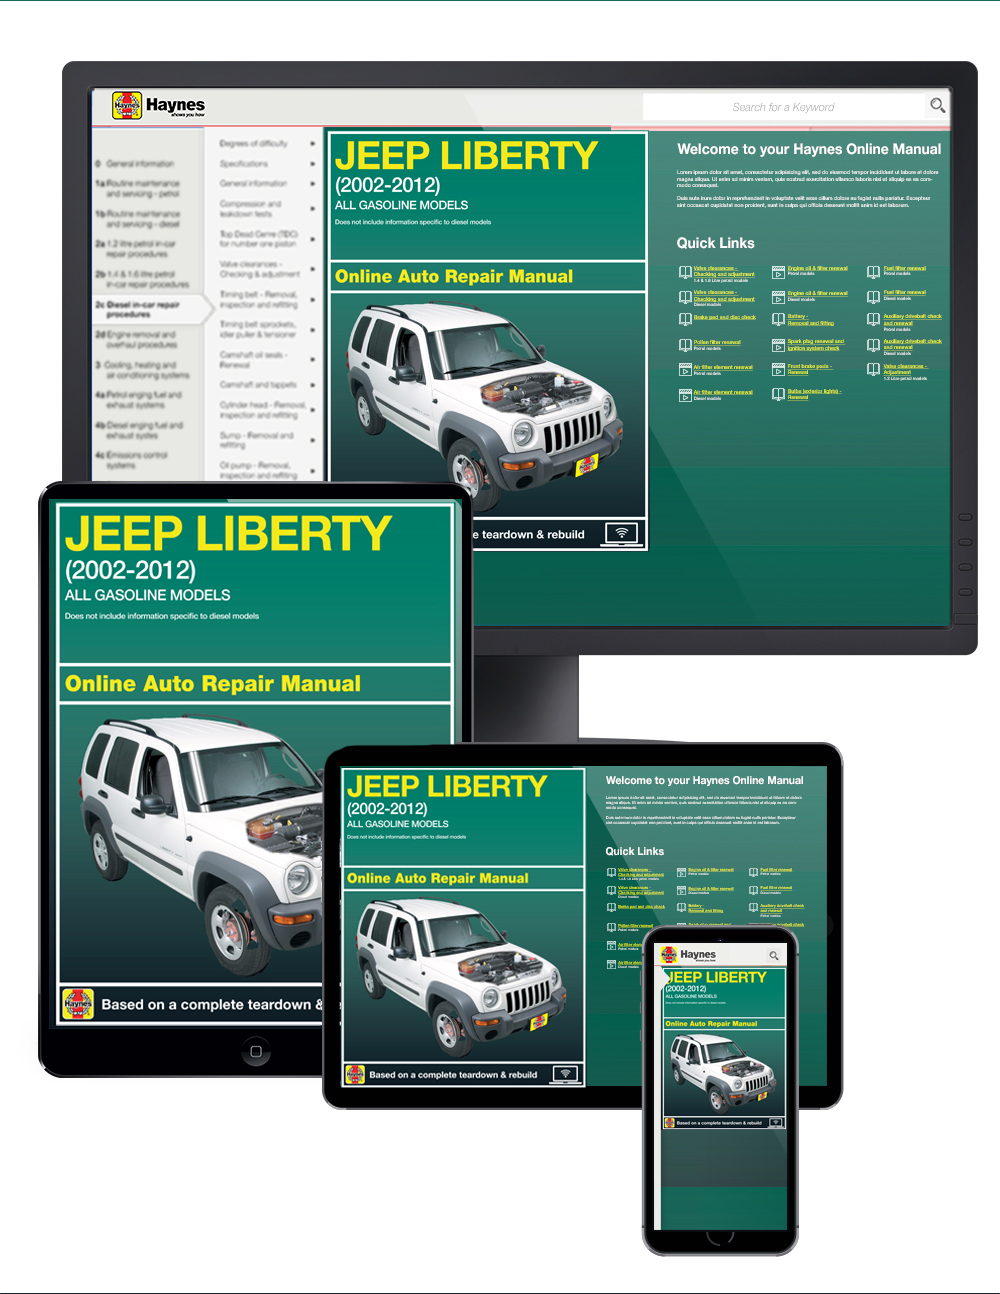 Jeep Liberty (02-12) Haynes Online Manual from Haynes Manuals US